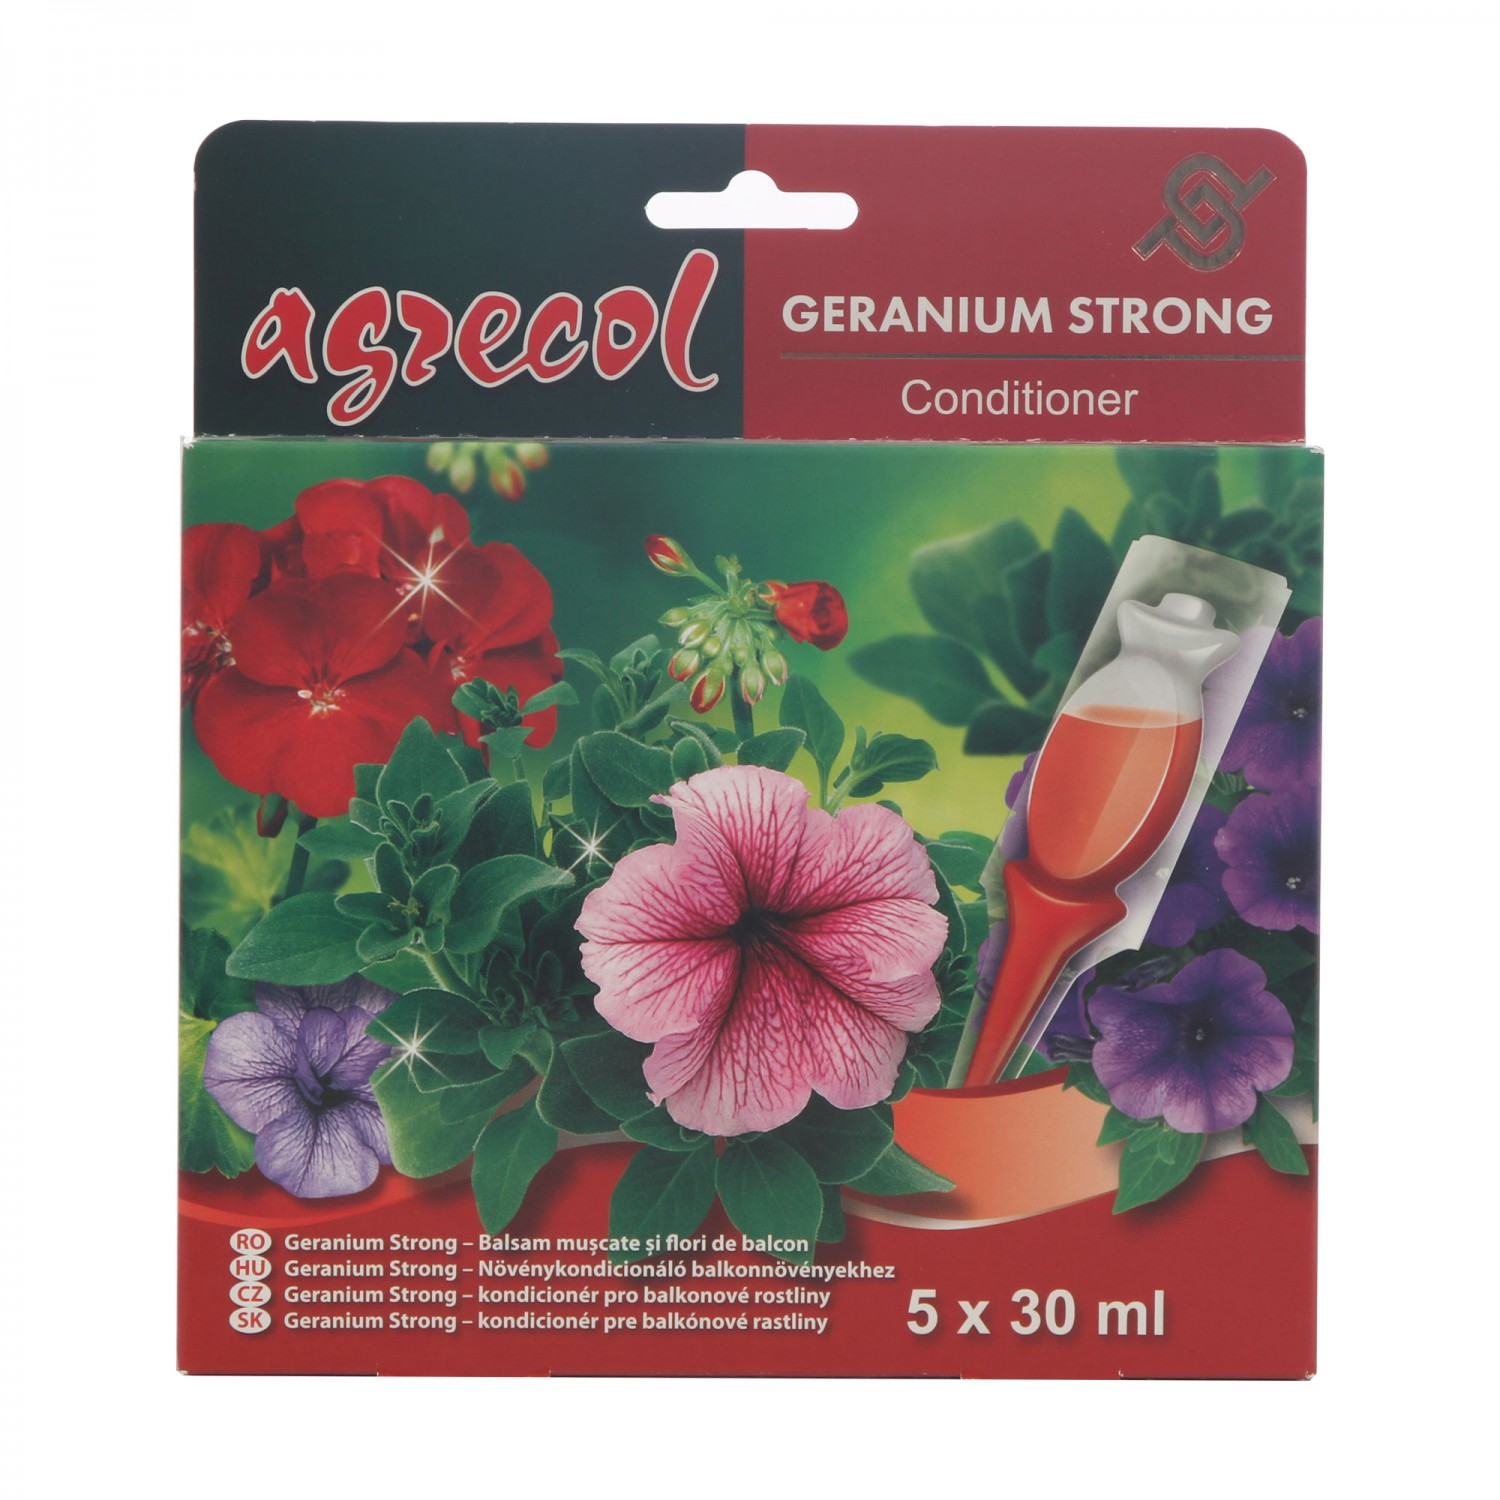 Ingrasamant pentru muscate Agrecol Strong, lichid, 5 x 30 ml